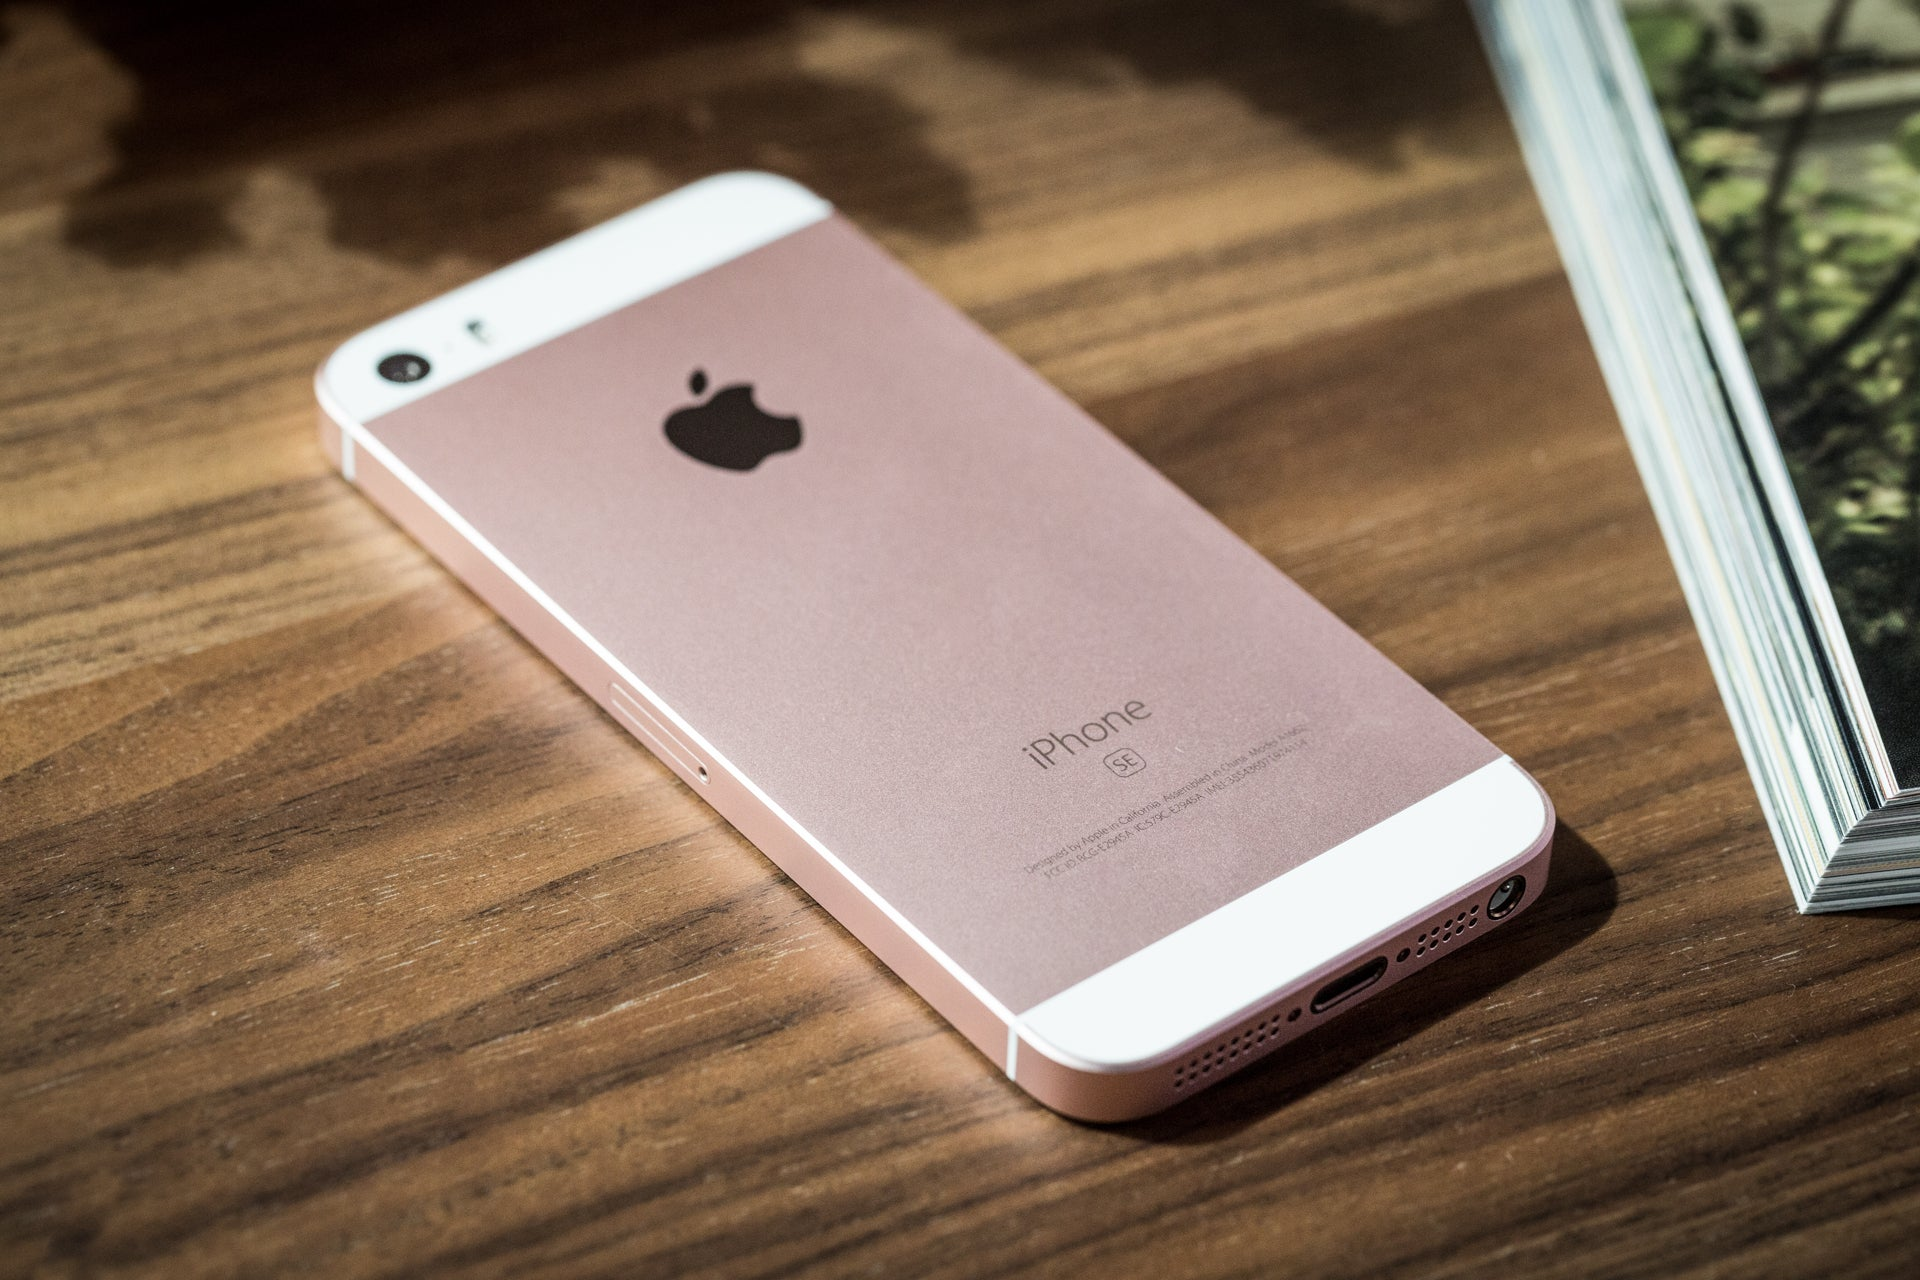 hot sale online a20f2 251df iPhone SE review: Features, Specifications, and Pricing | Macworld